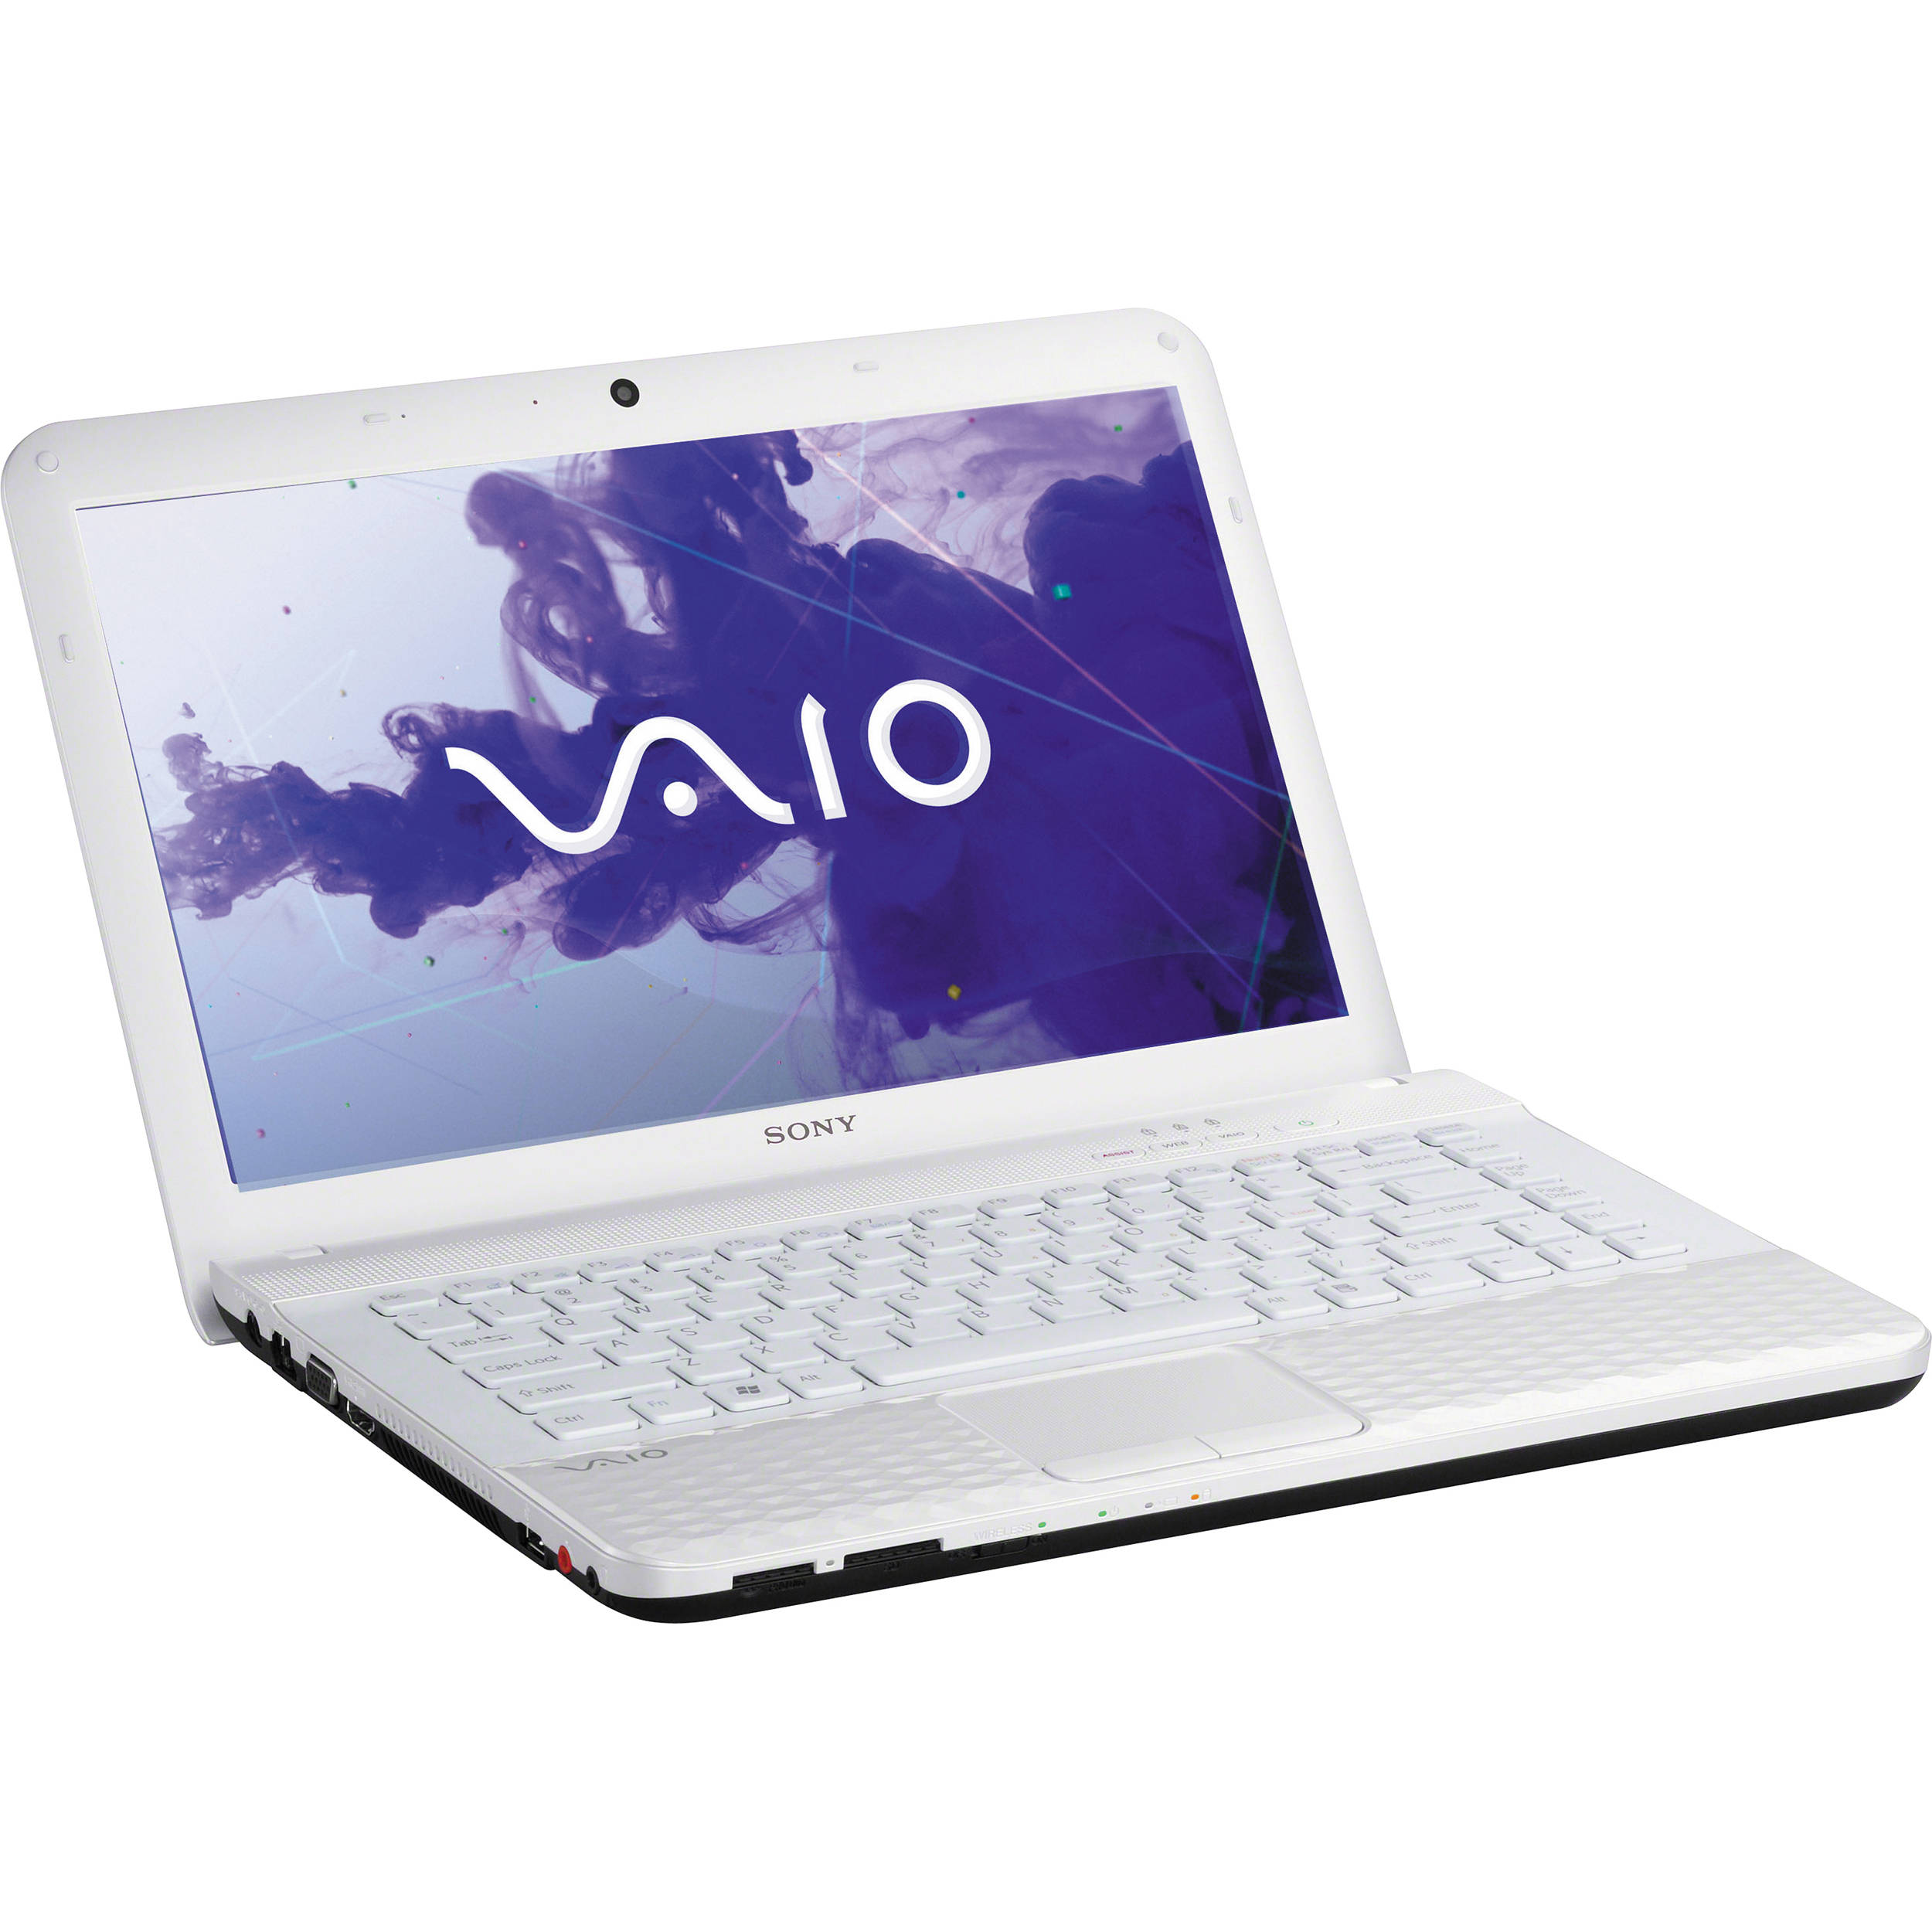 Sony Vaio VPCEG23FX/W Windows 8 X64